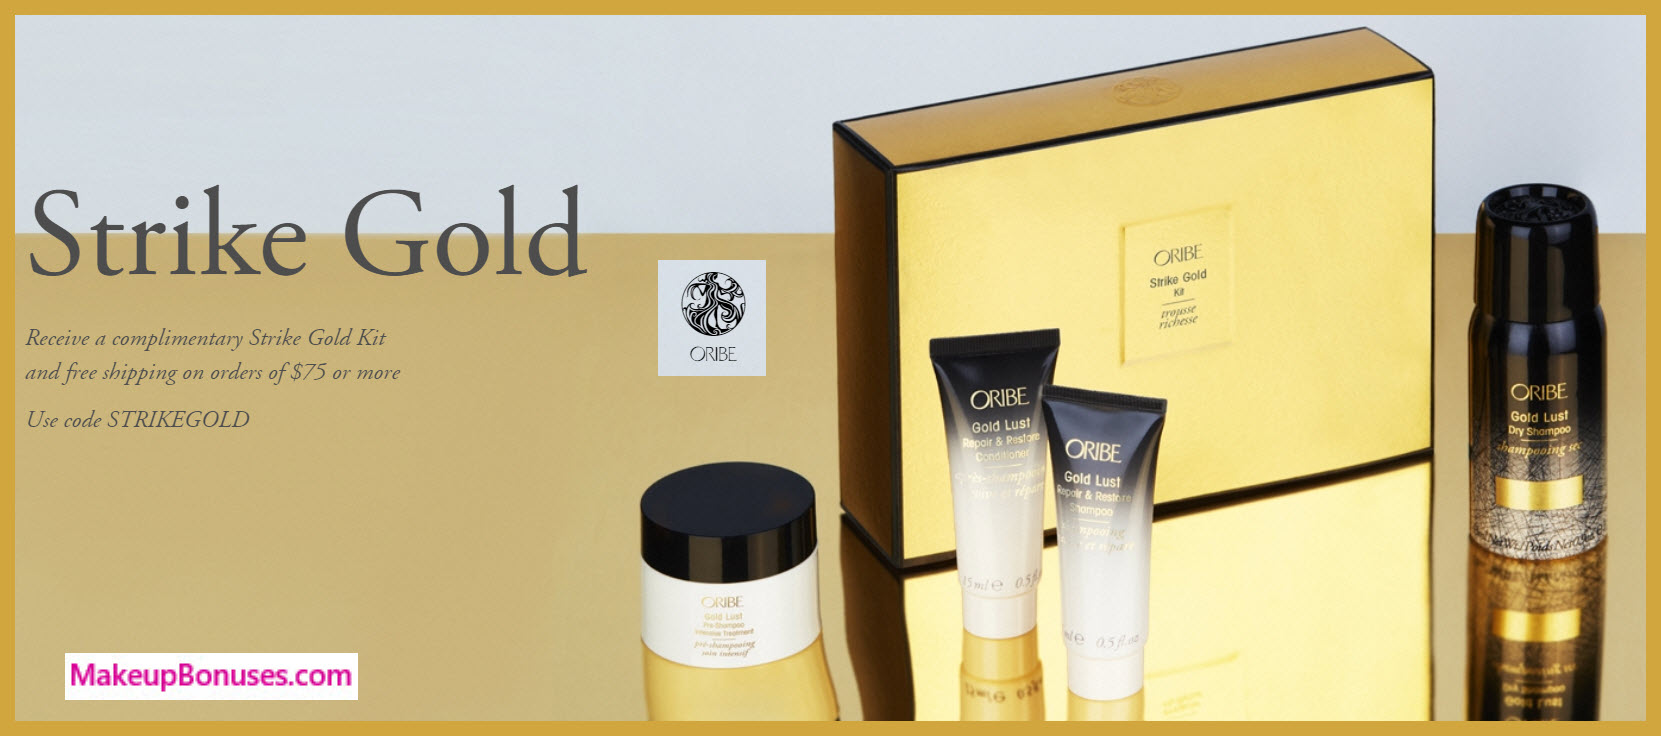 Receive a free 4-pc gift with your $75 Oribe purchase